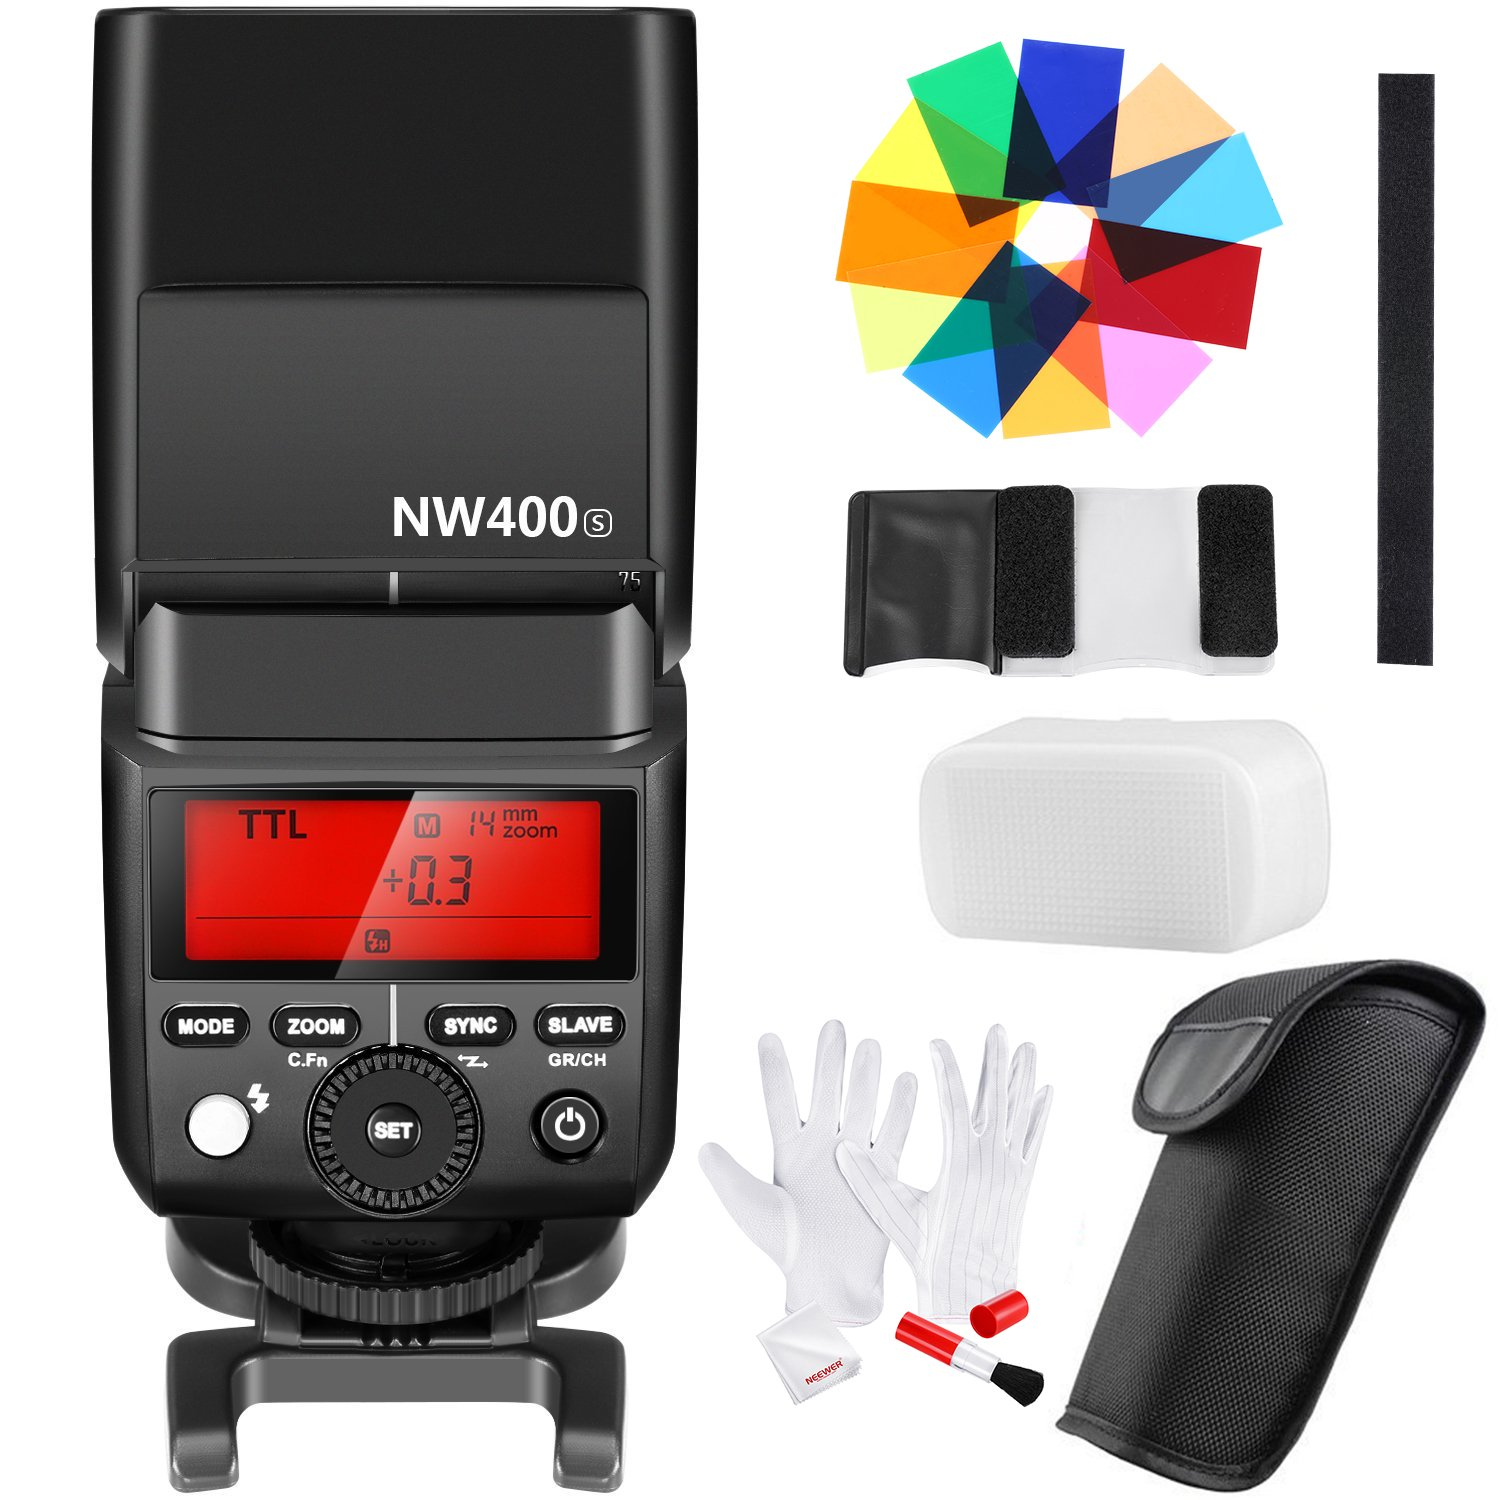 Neewer 2.4G HSS 1/8000s TTL GN36 Wireless Master Slave Flash Speedlite, 12 Color Filters, 3-In-1 Cleaning Kit for Sony A7 A7R A7S A7II A7RII A7SII A6000 A6300 A6500 A77II A58 A99 RX10 Cameras(NW400S) by Neewer